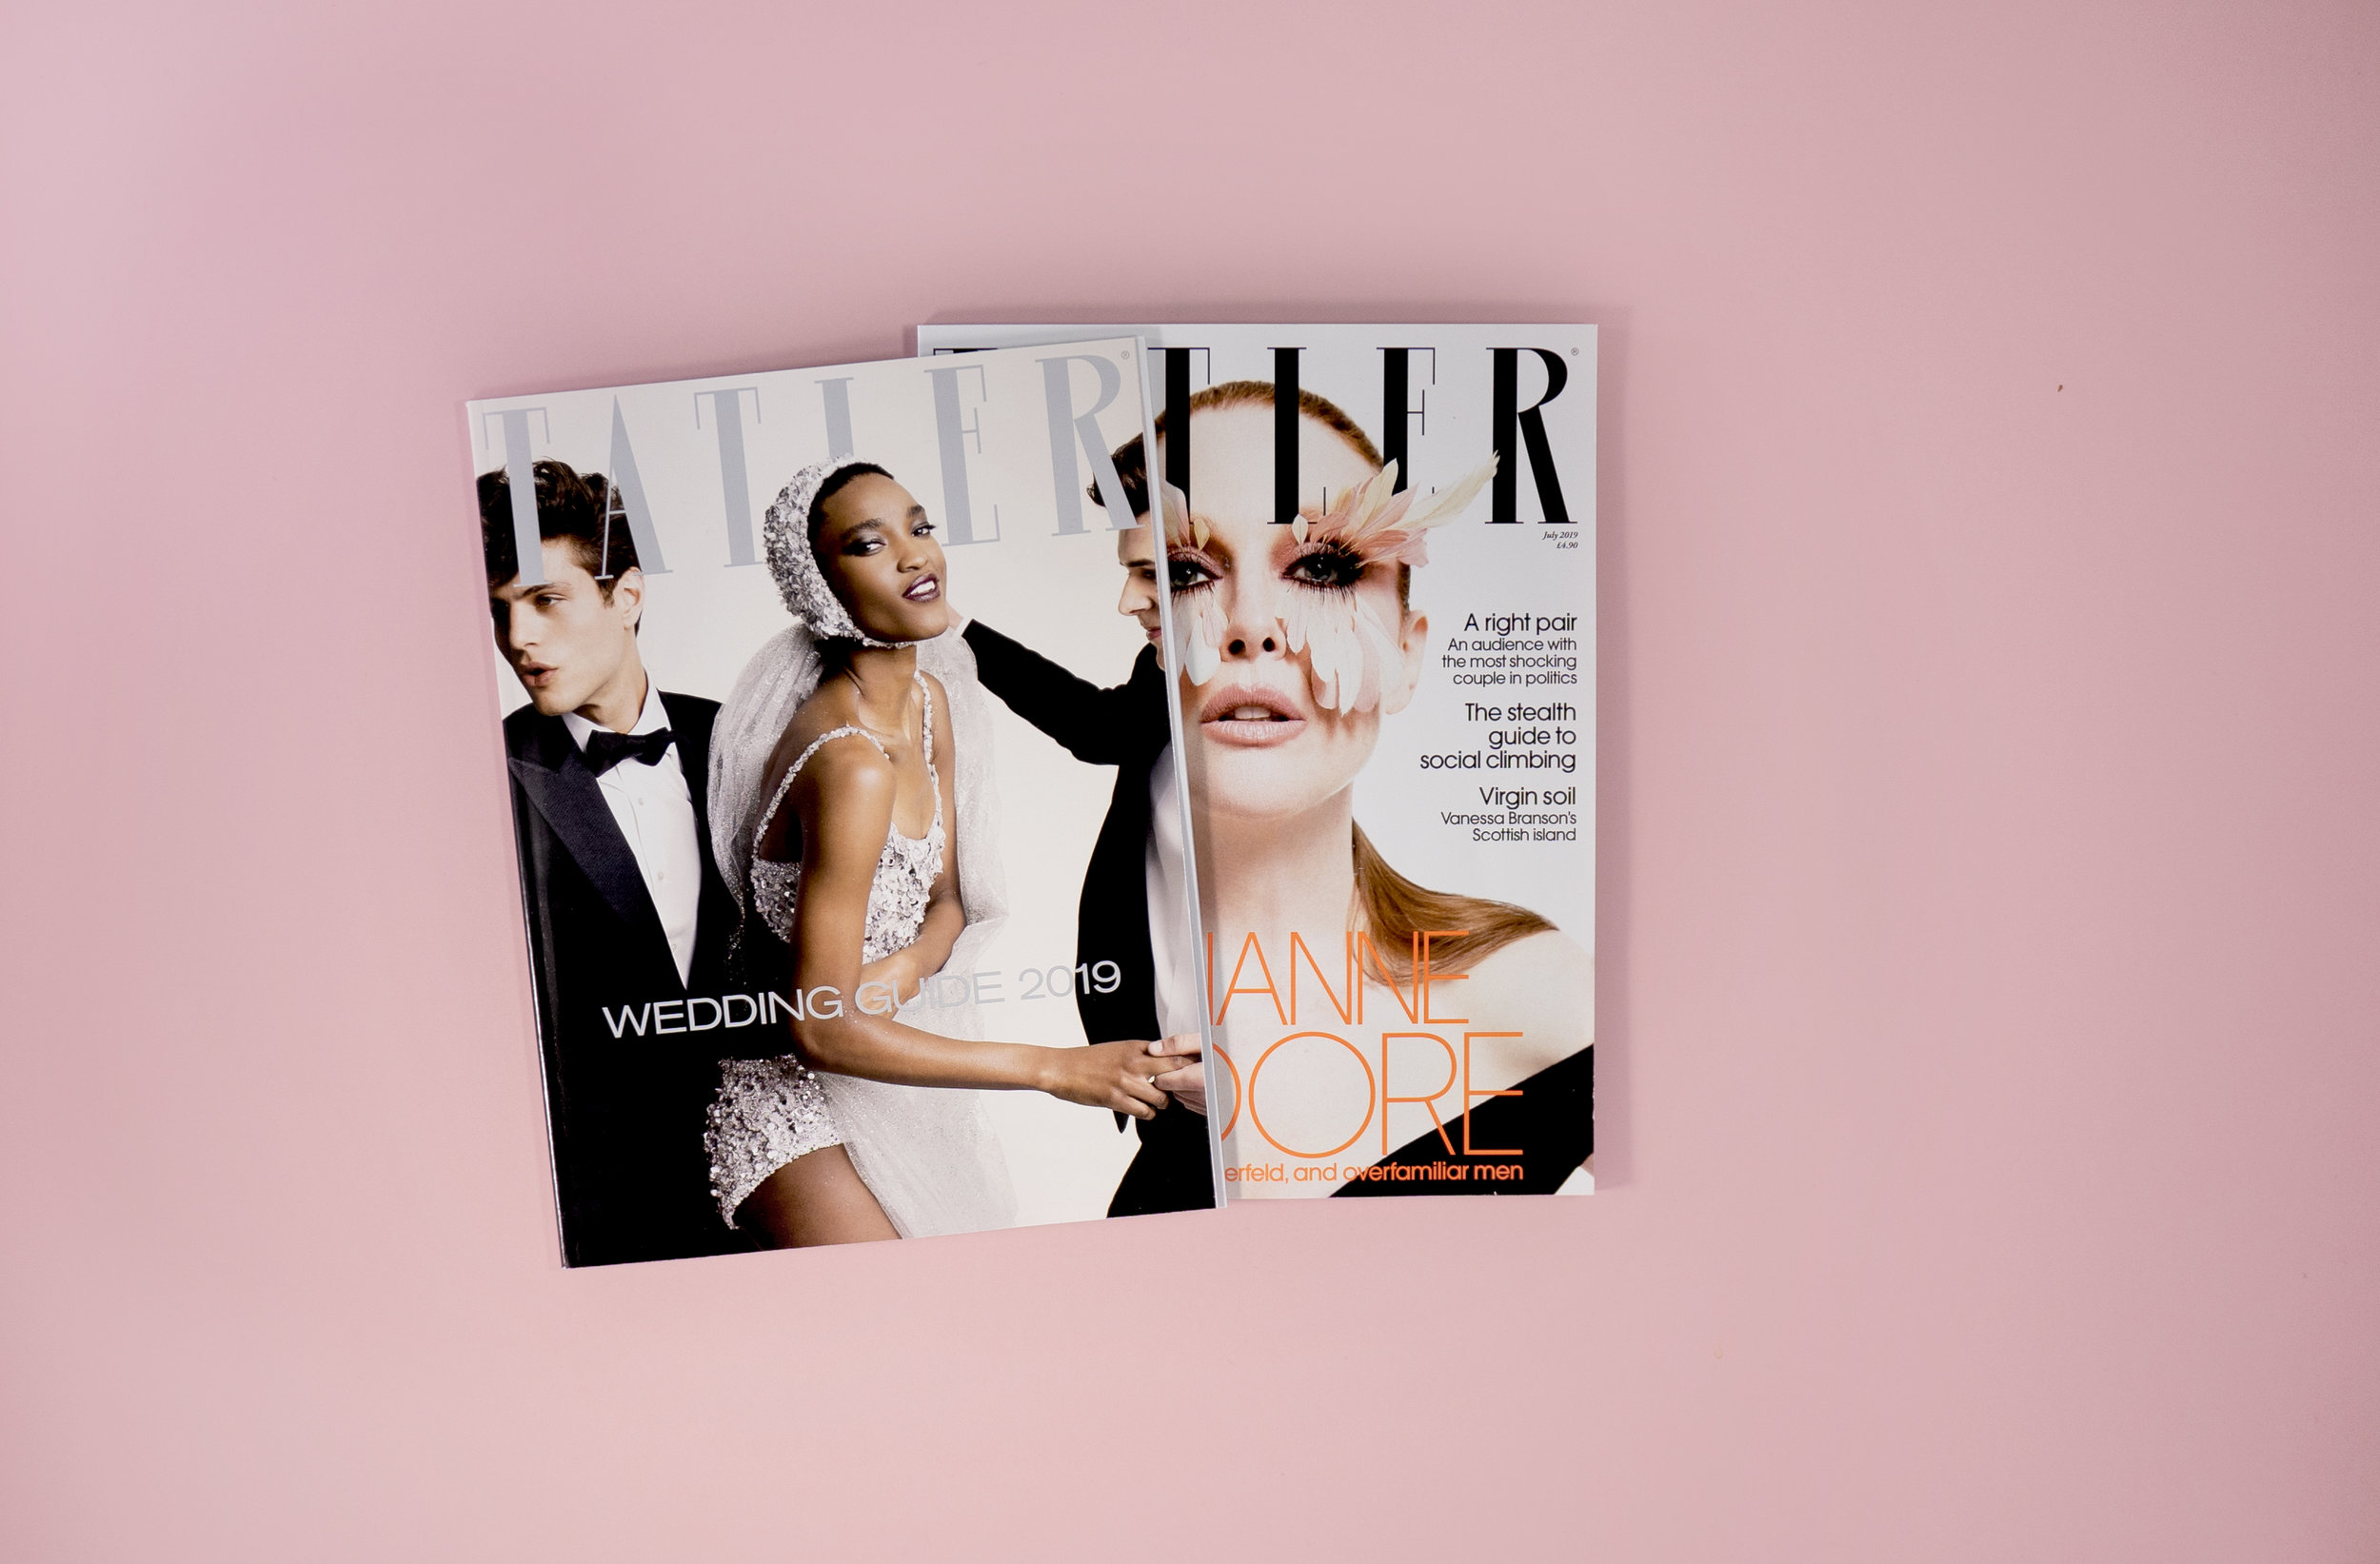 Tatler, June 2019 Edition & Wedding Guide